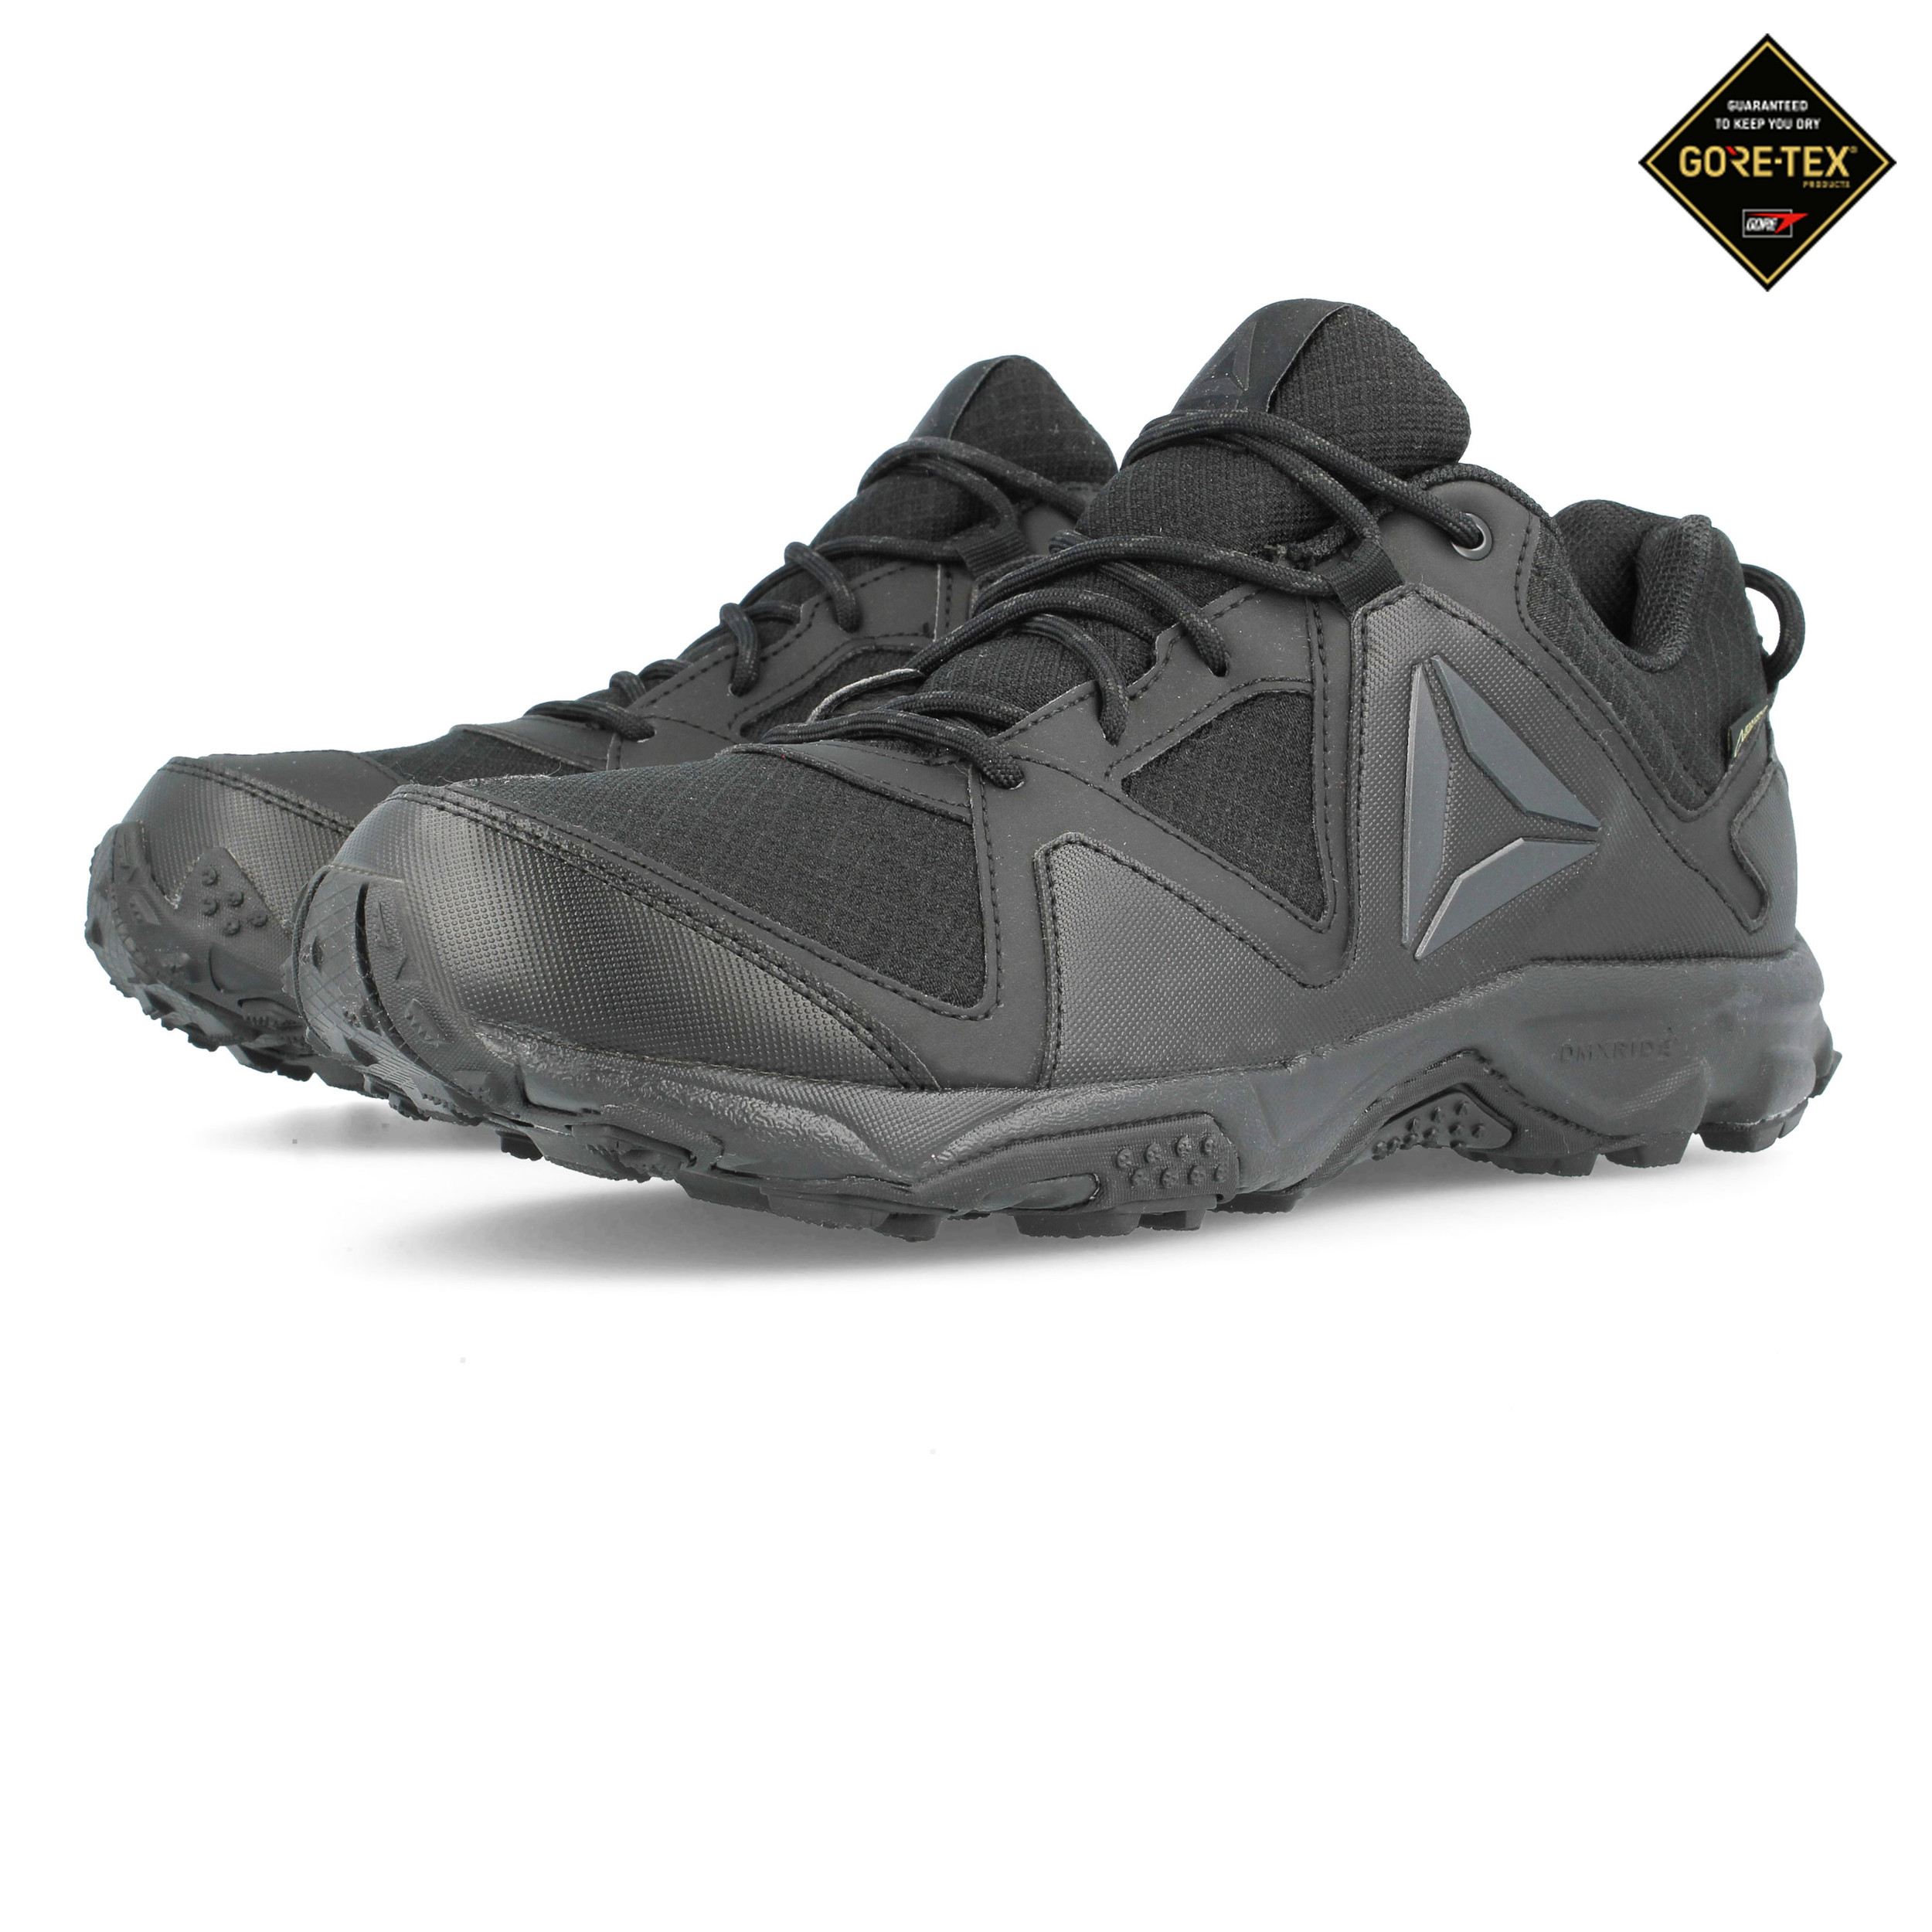 932c47143629a0 Reebok Womens Franconia Ridge 3.0 Gore-Tex Walking Shoes Black ...